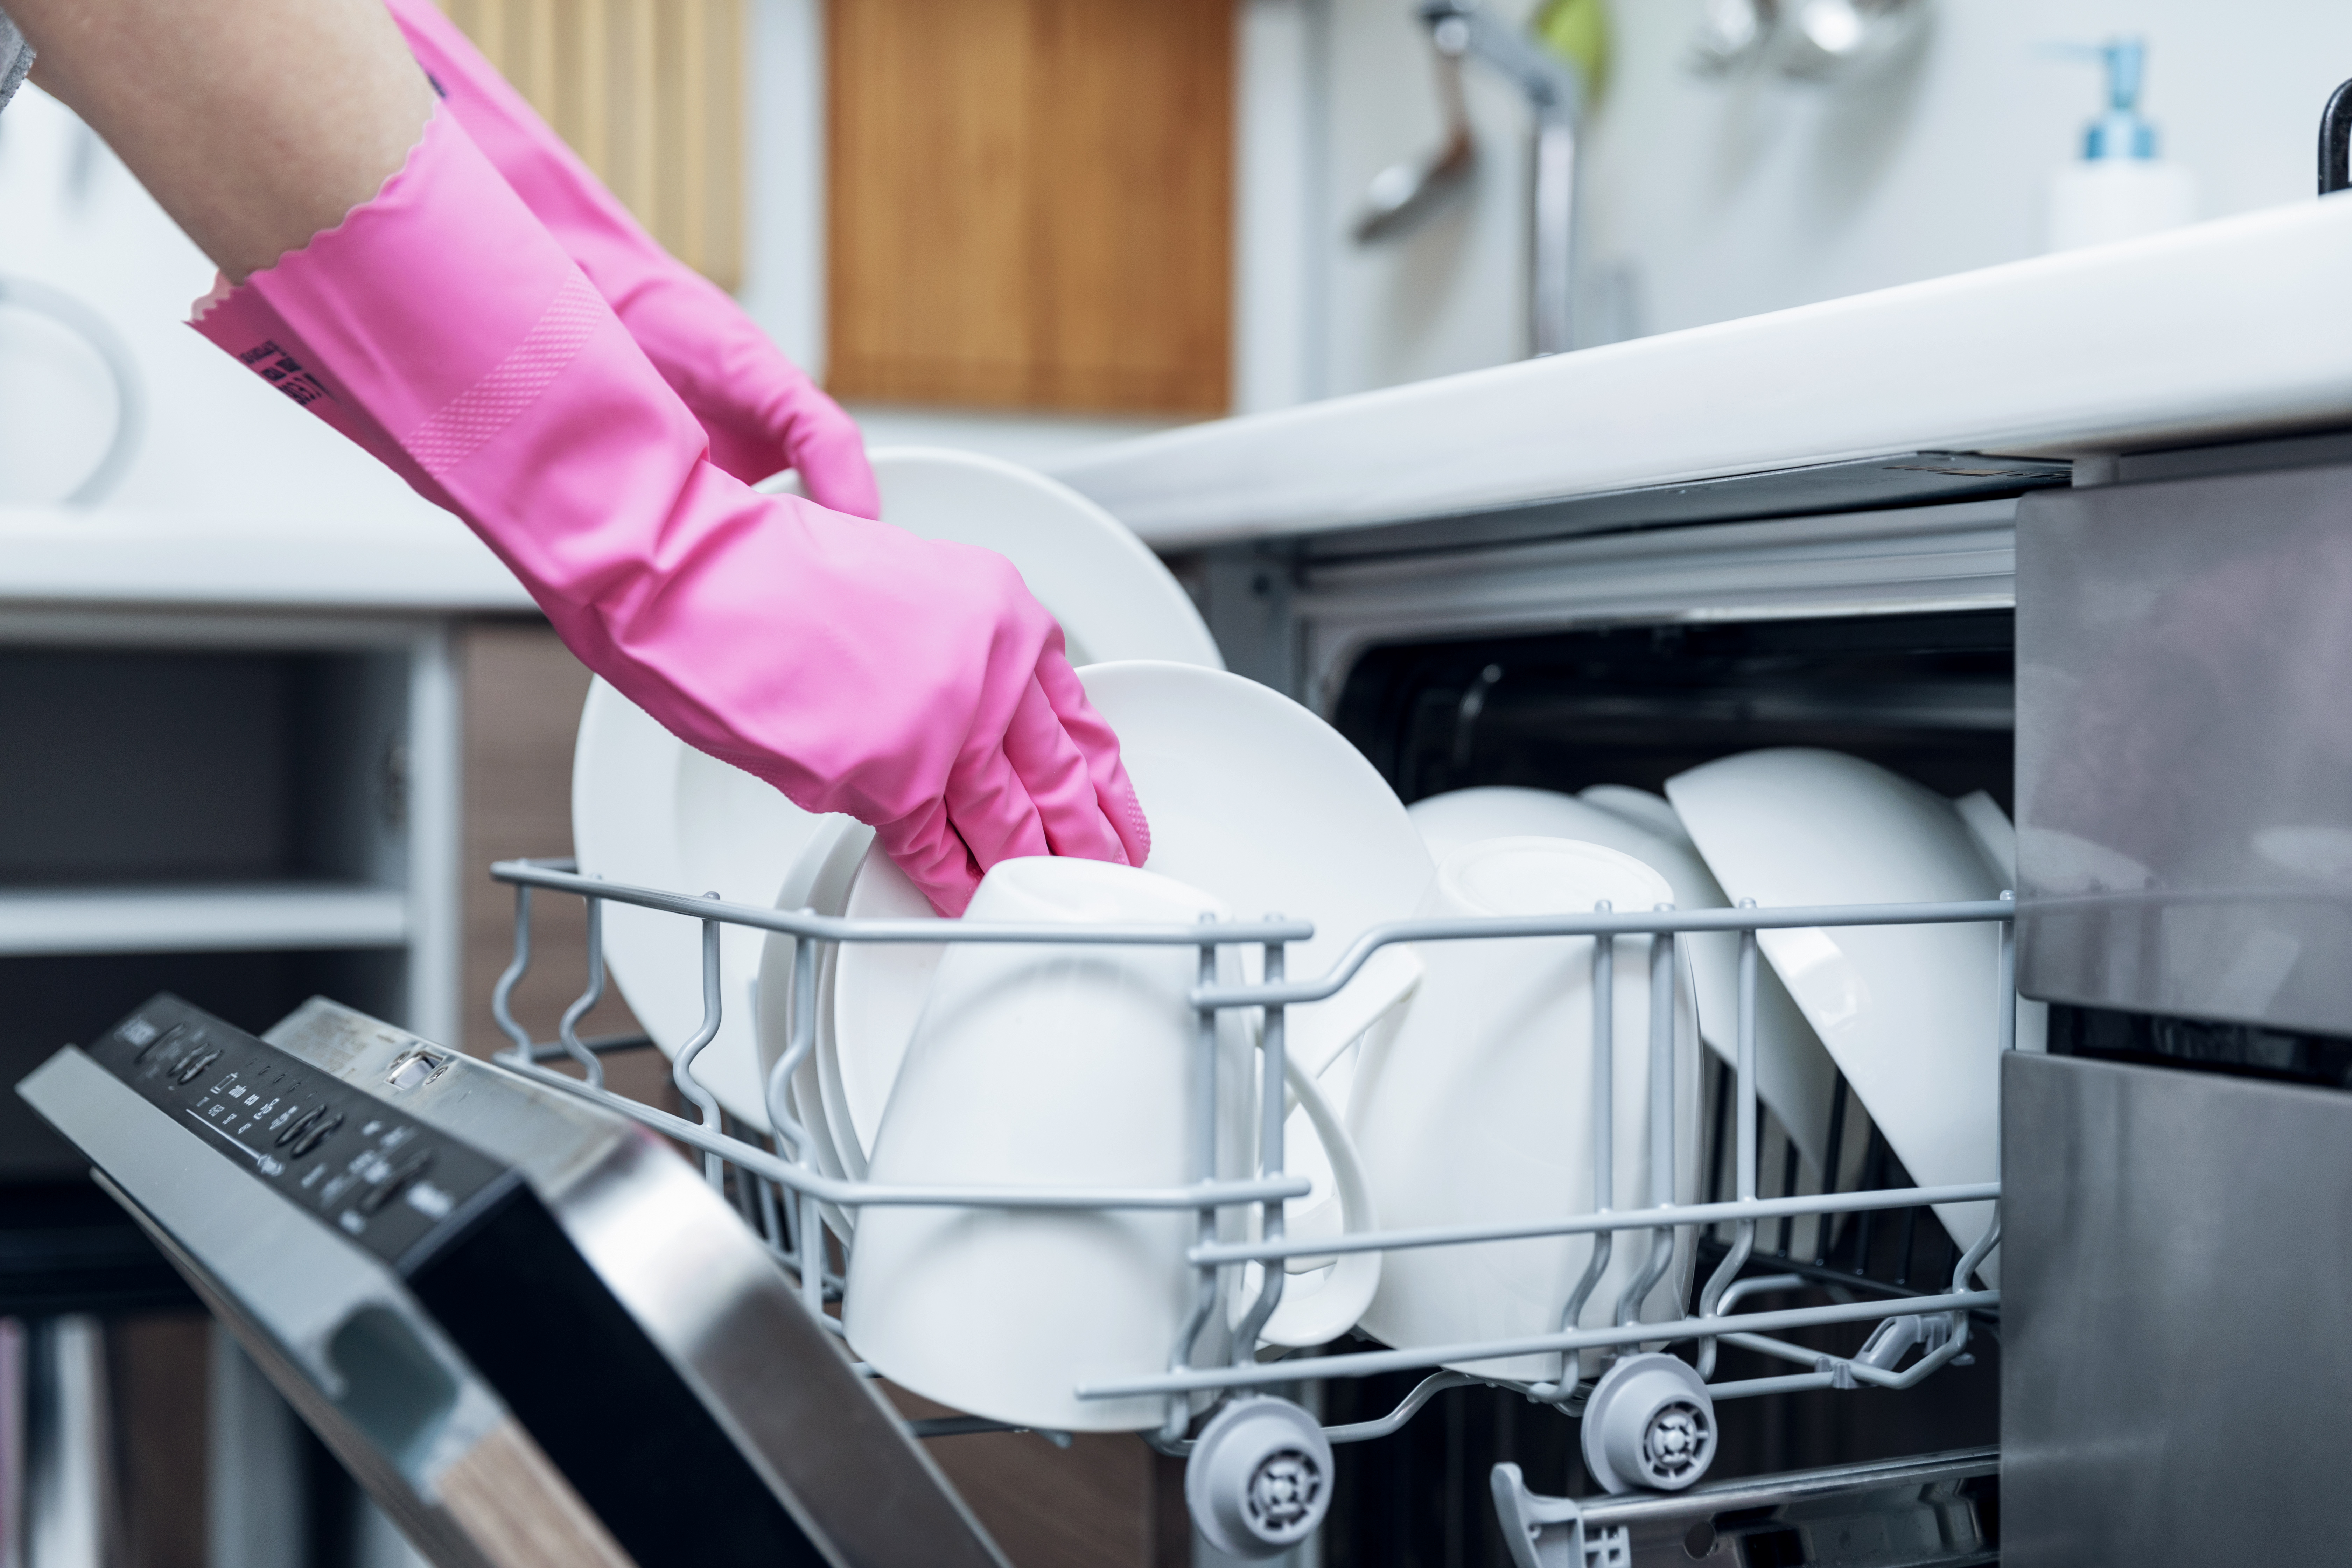 How To Replace The Filters On A Maytag Dishwasher Model MDB8750AWB | Home  Guides | SF Gate